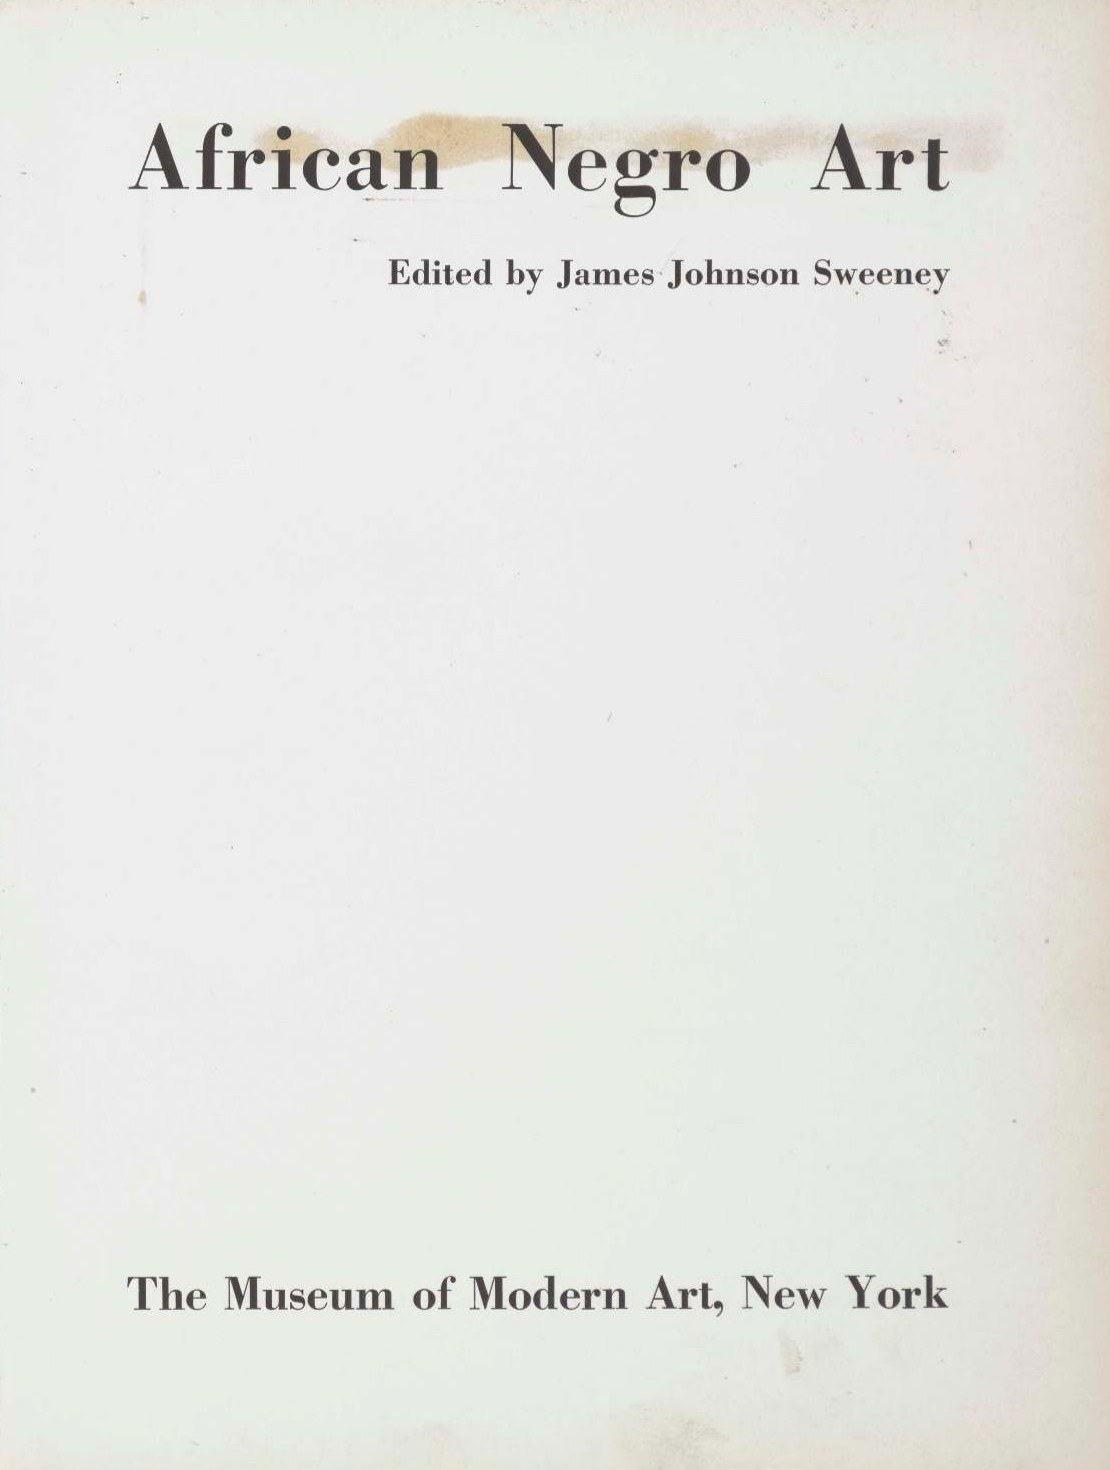 African Negro art / Edited by James Johnson Sweeney. — New York : The Museum of Modern Art, 1935